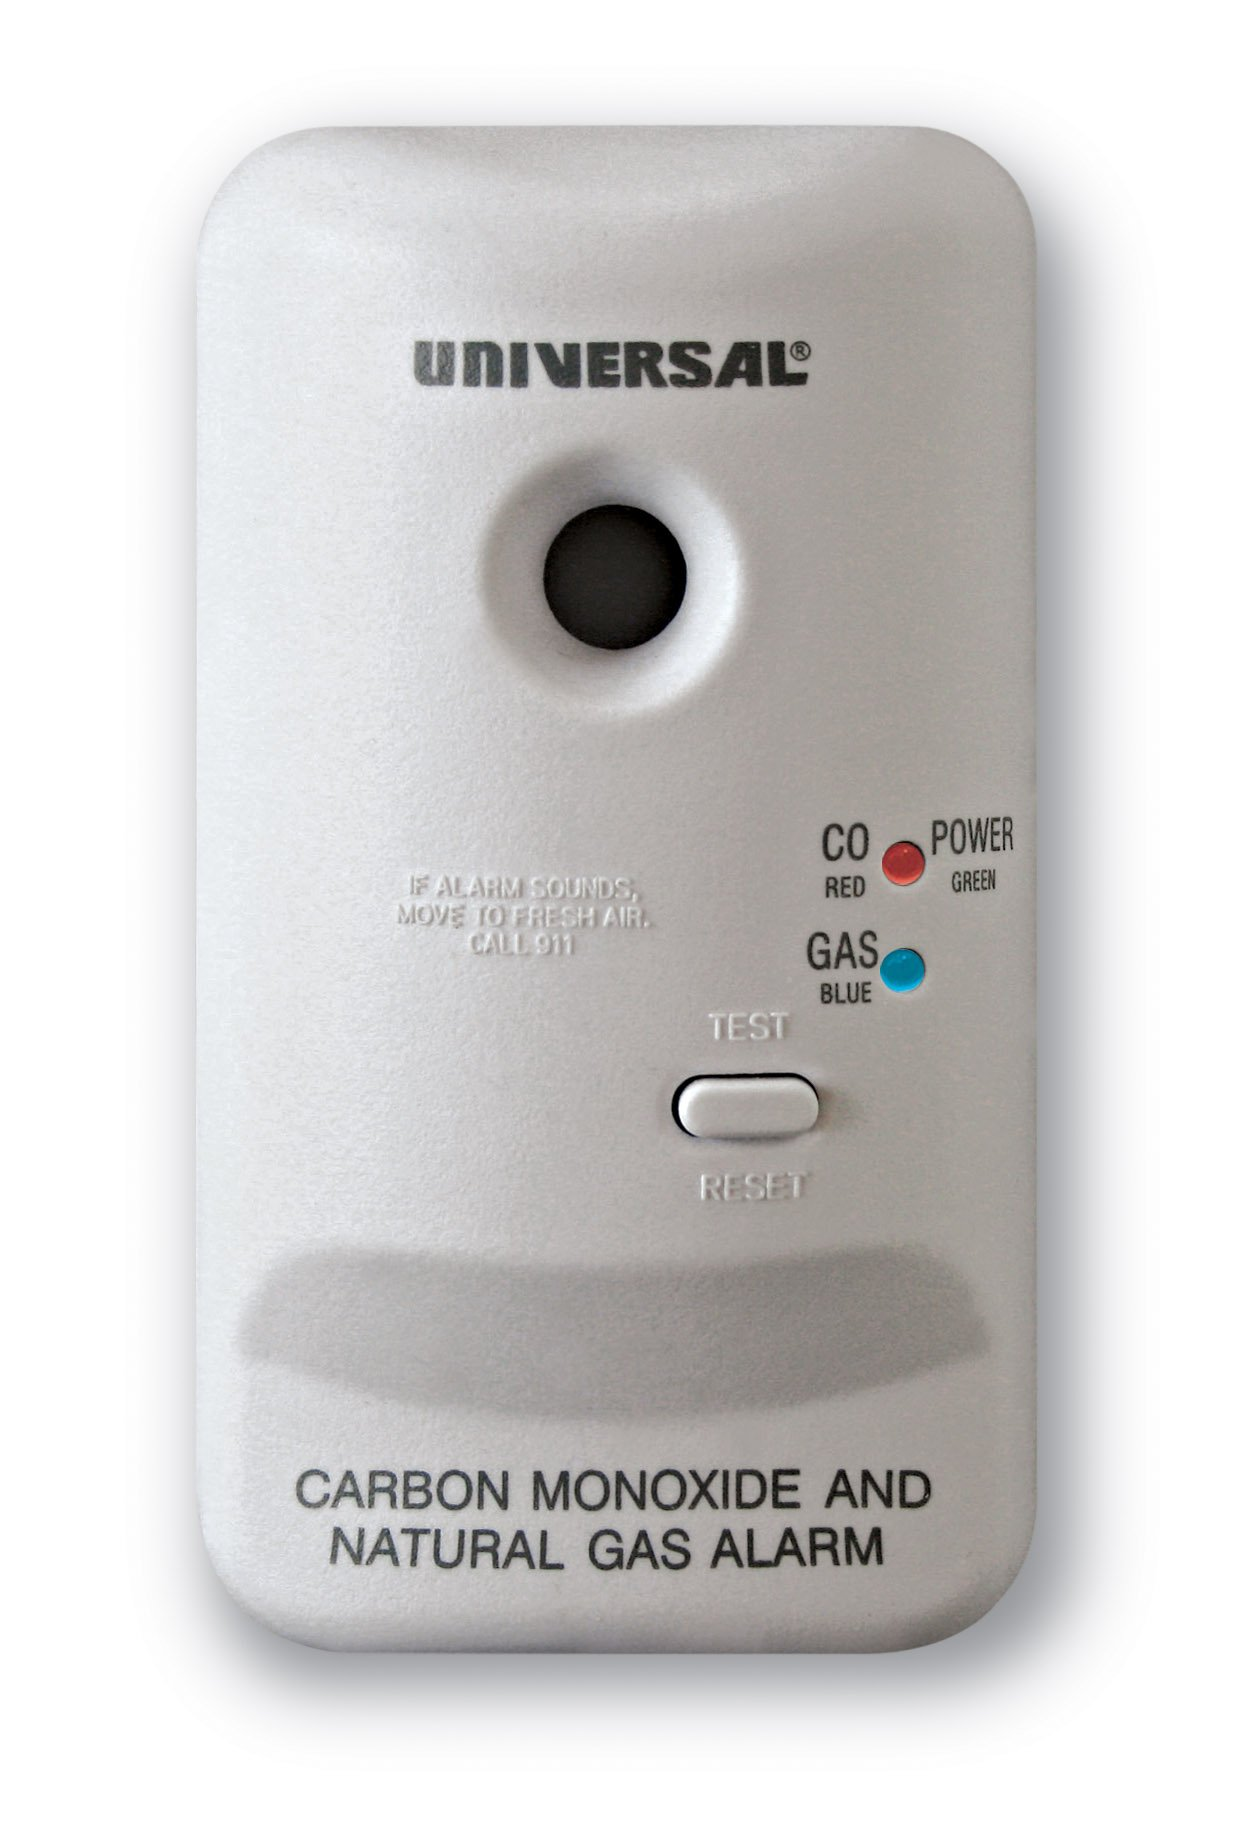 Universal Security Instruments M Series Plug-In Carbon Monoxide and Natural Gas Alarm with 9-Volt Battery Backup, Model MCN400B by Universal Security Instruments